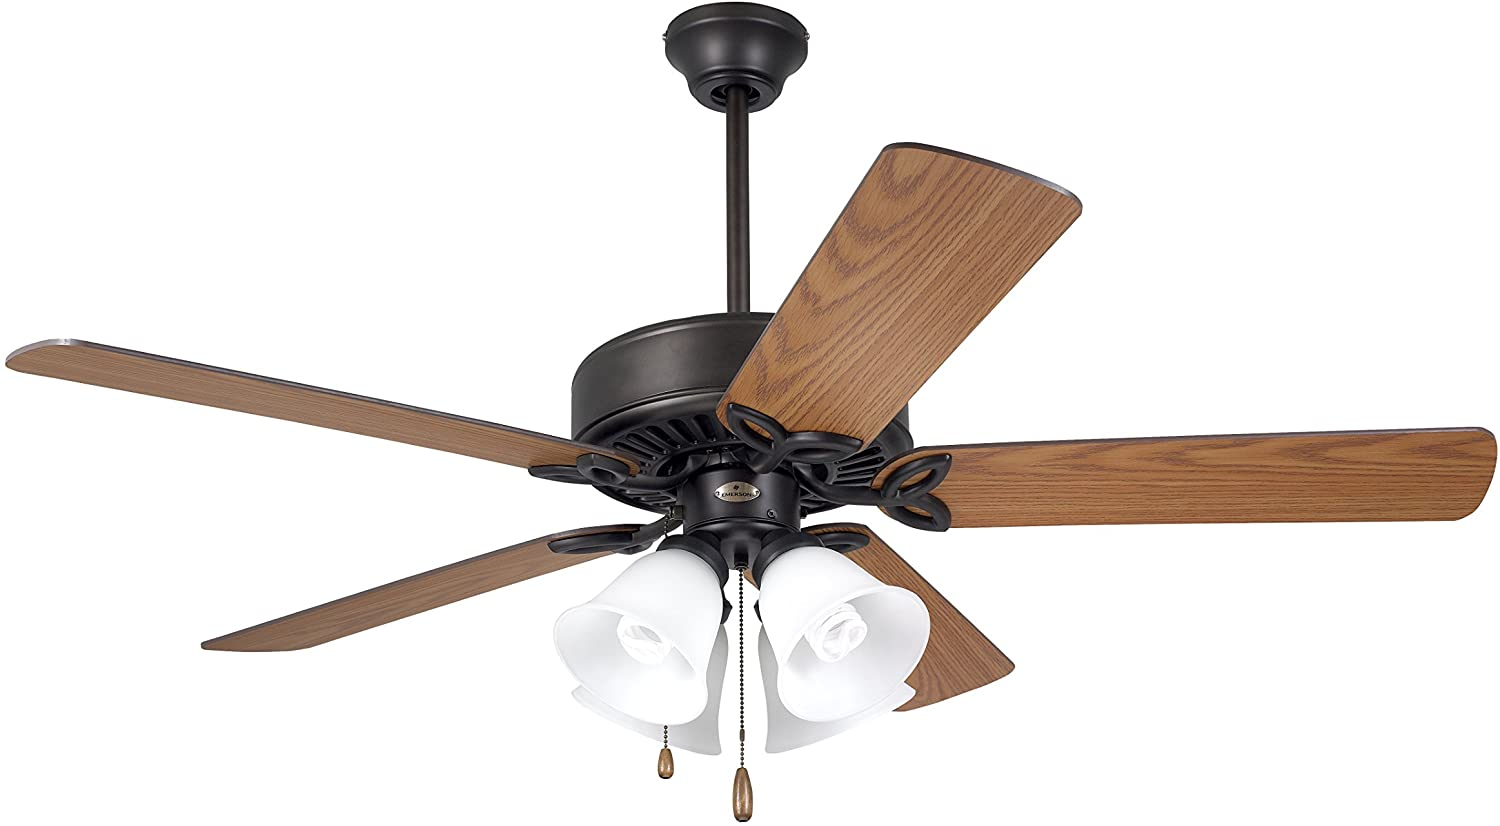 Oil Rubbed Bronze Finish 50-Inch Blades Emerson Ceiling Fans CF711ORS Pro Series II Indoor Ceiling Fan with Light